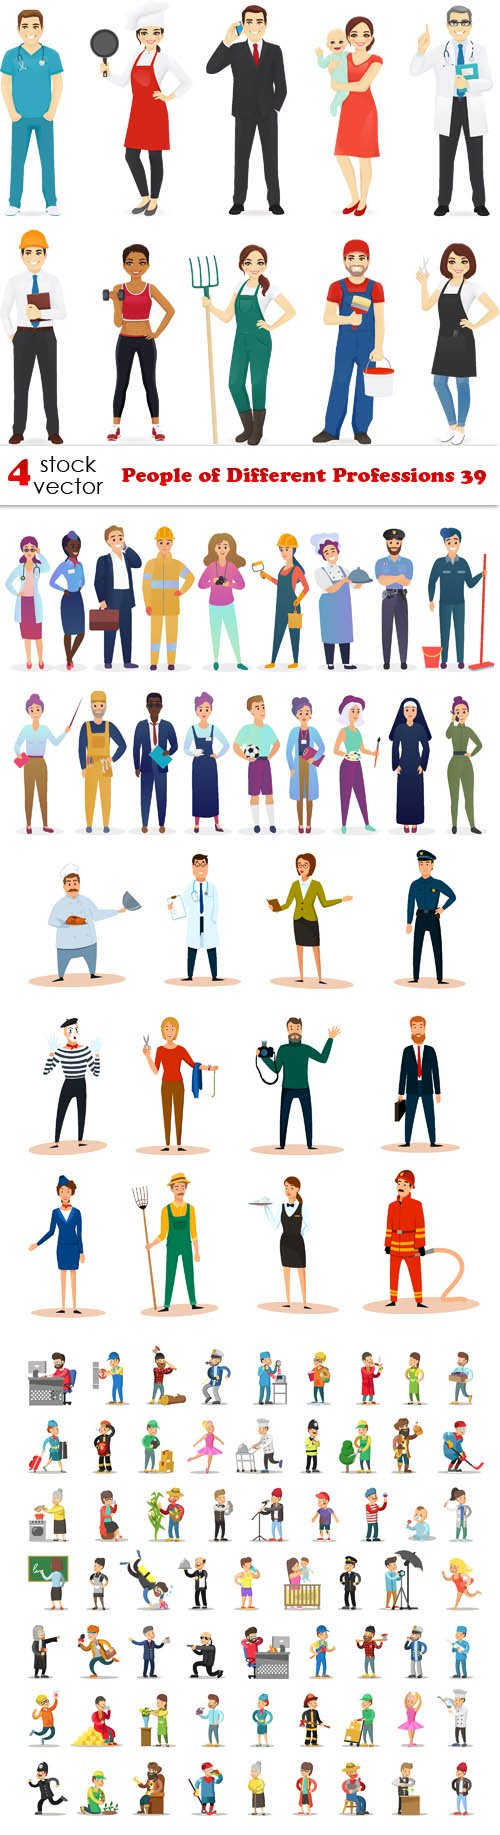 Vectors - People of Different Professions 39